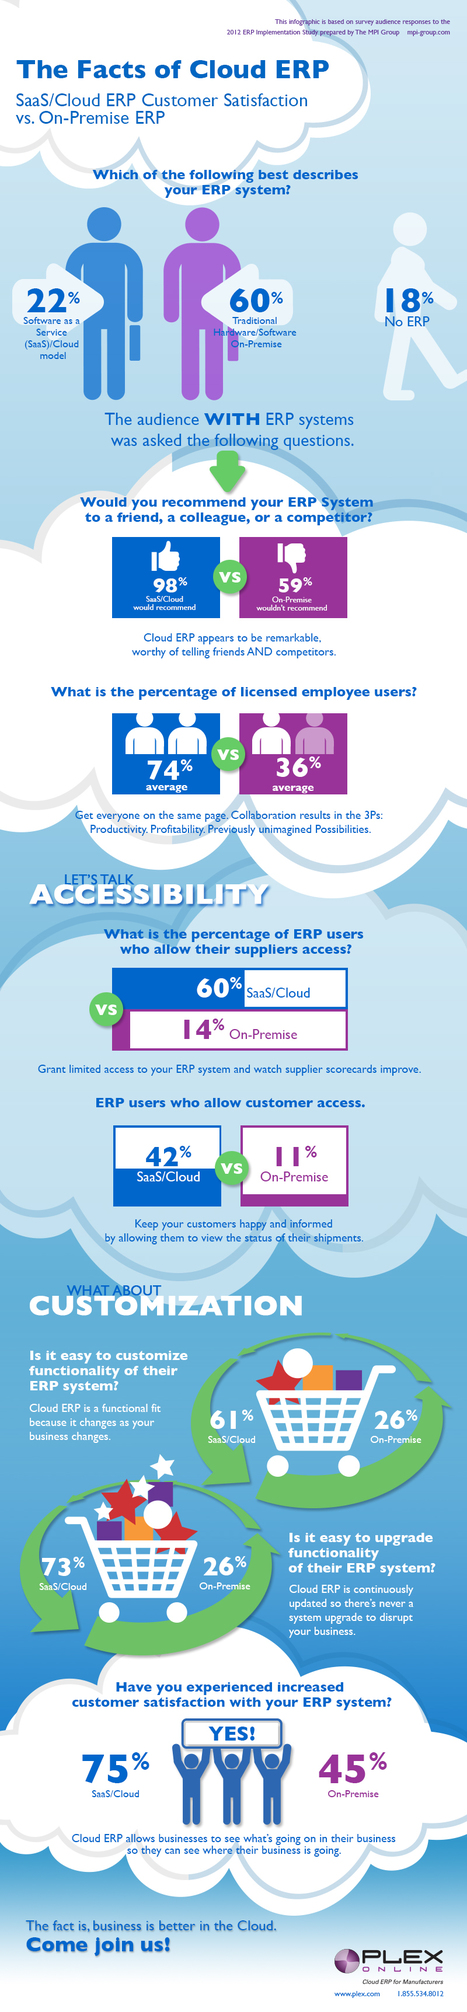 INFOGRAPHIC: The Facts Of Cloud ERP | Cloud Central | Scoop.it